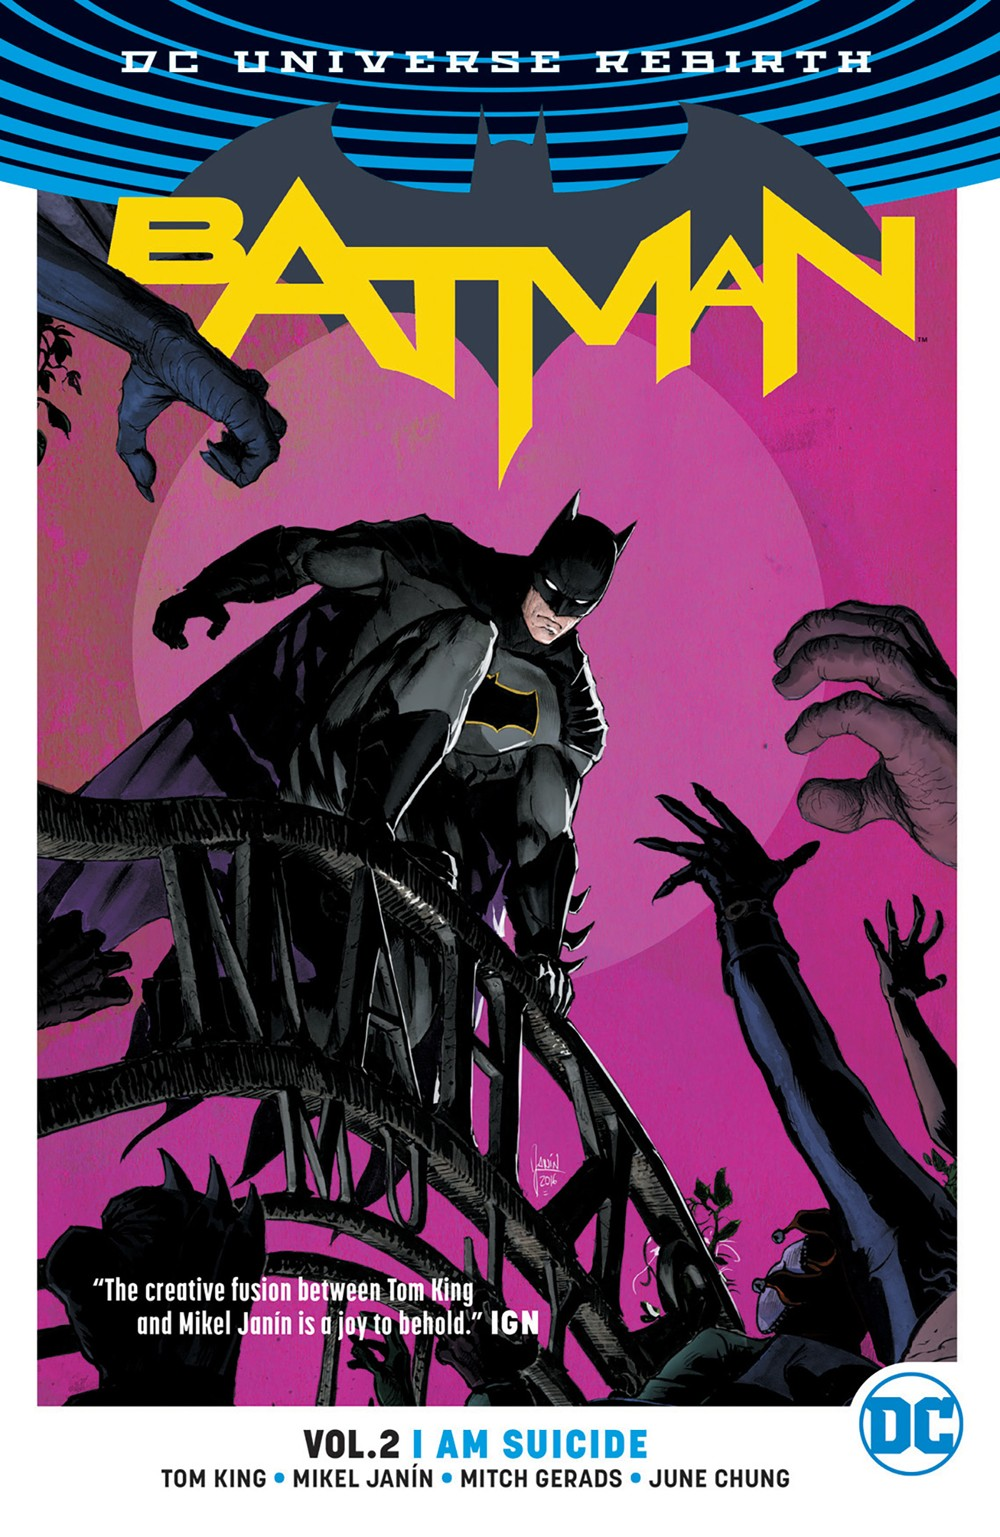 BATMAN VOLUME 2 I AM SUICIDE GRAPHIC NOVEL